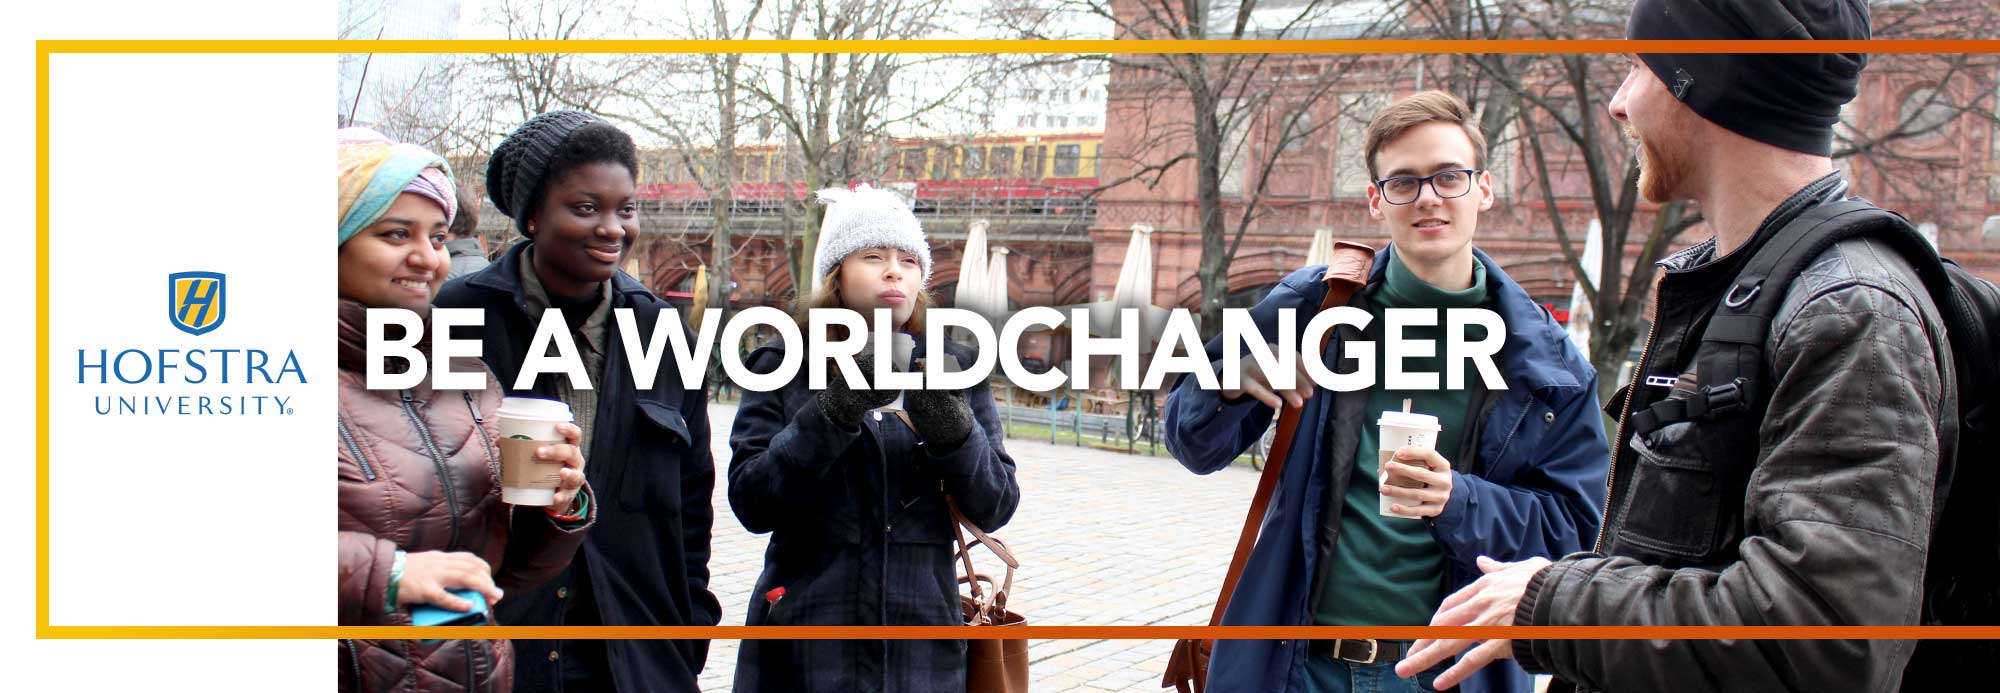 Hofstra University - Be a Worldchanger